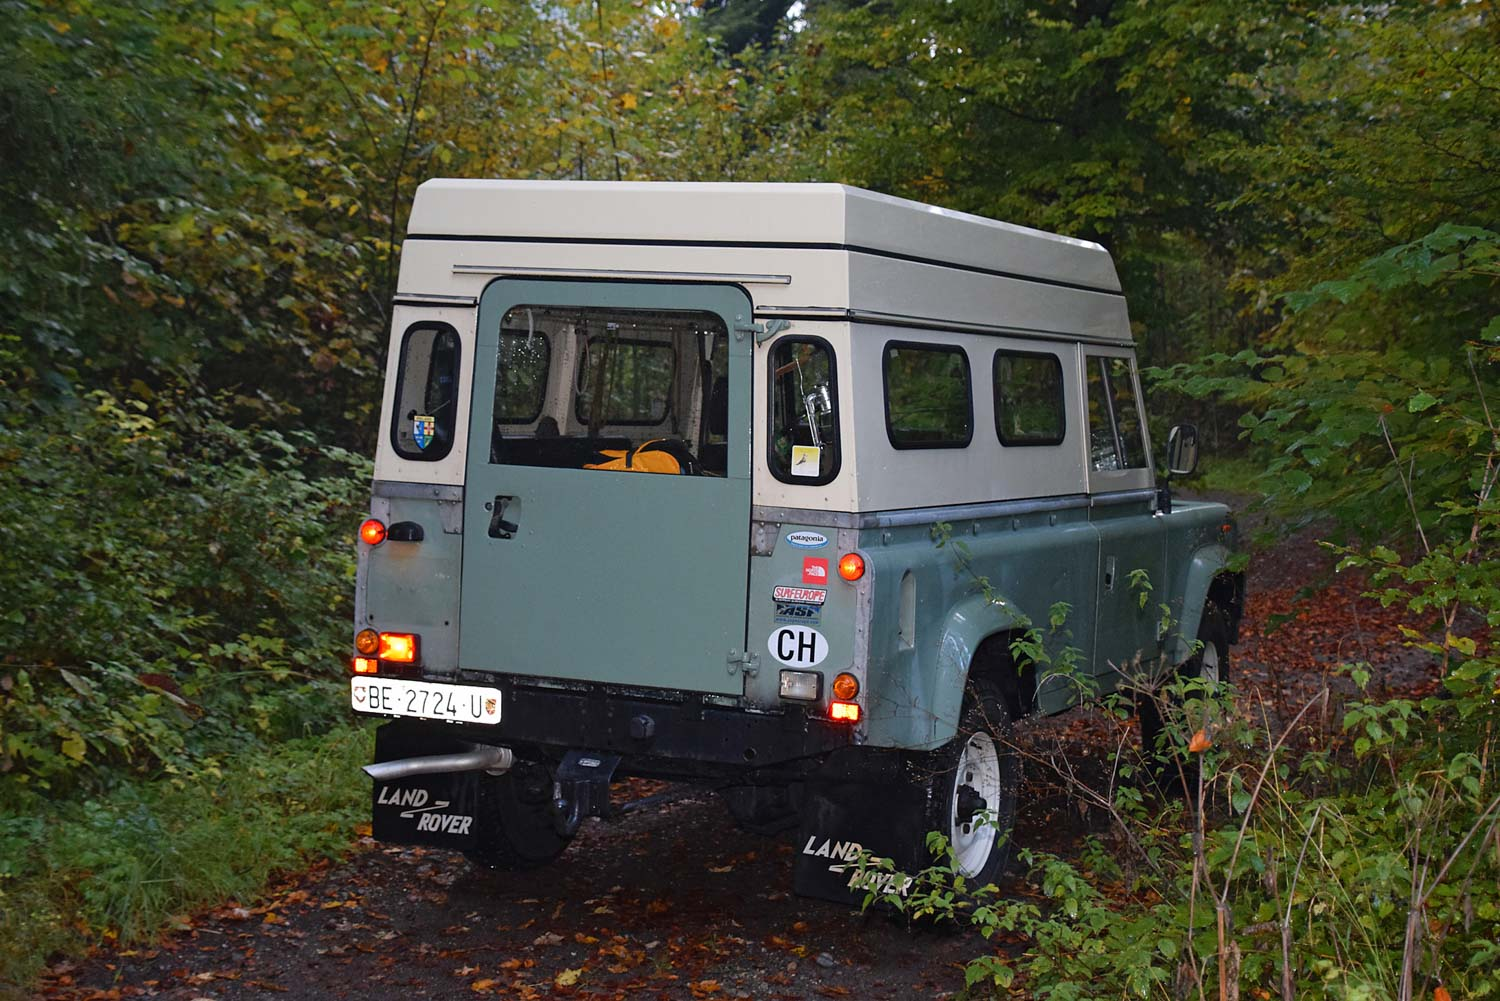 Land-rover station photo - 9